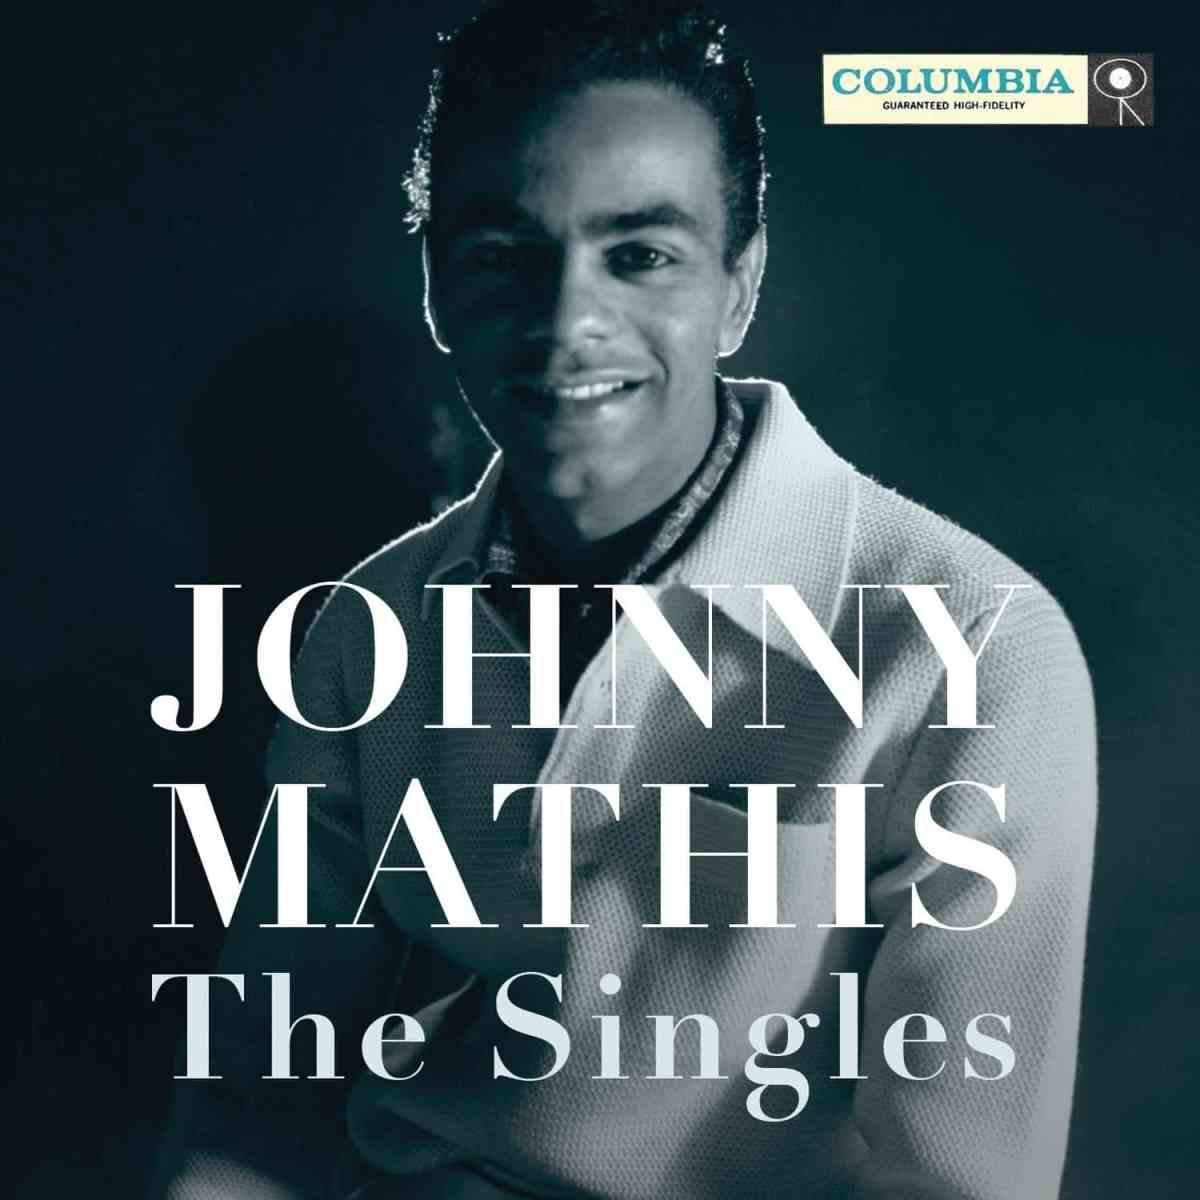 """Review: Johnny Mathis, """"The Singles"""" - The Second Disc"""